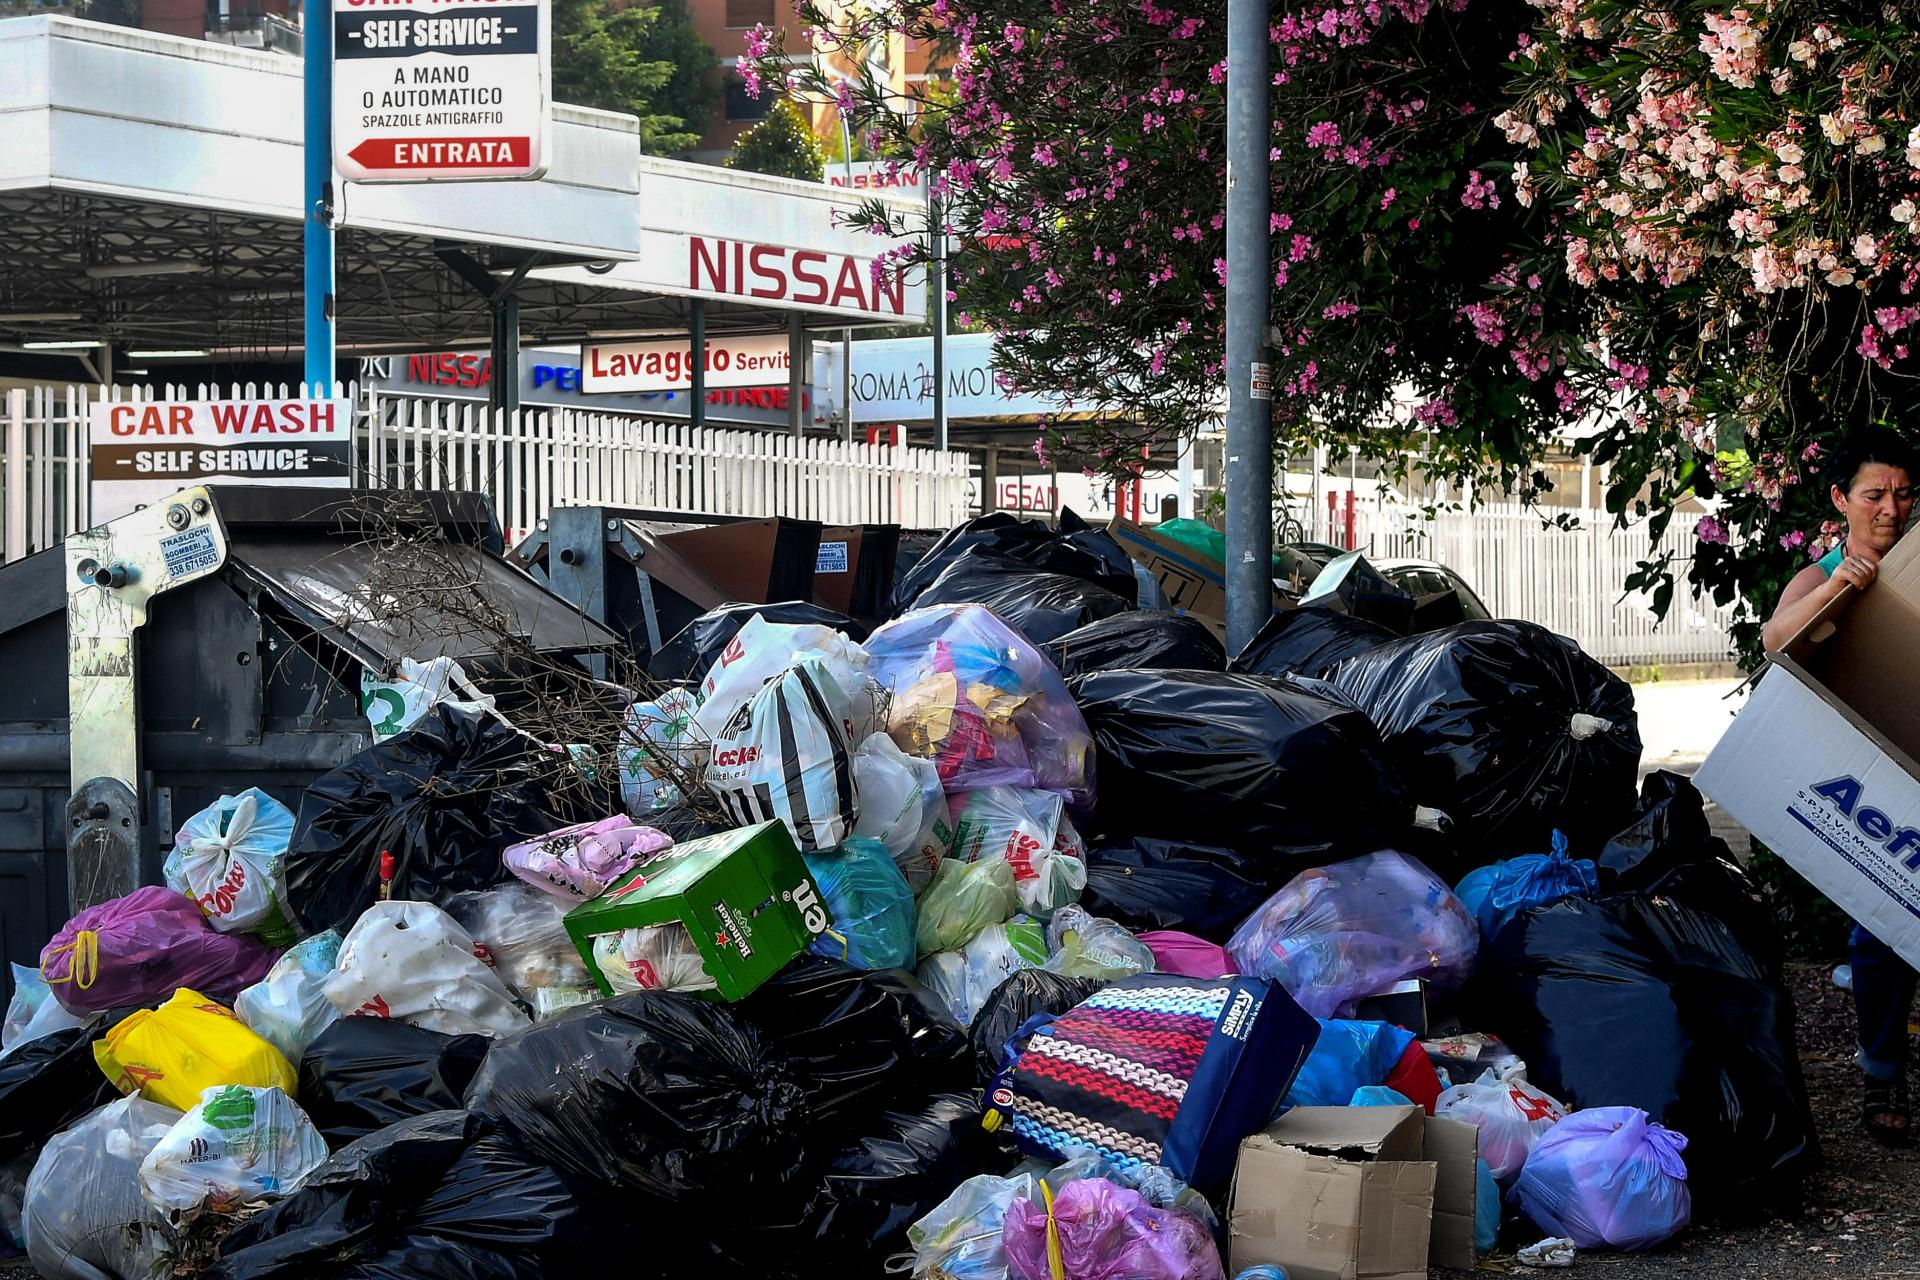 Mounds of rubbish pile up on the side of a street in Rome's Due Ponti district. Photo: AFP